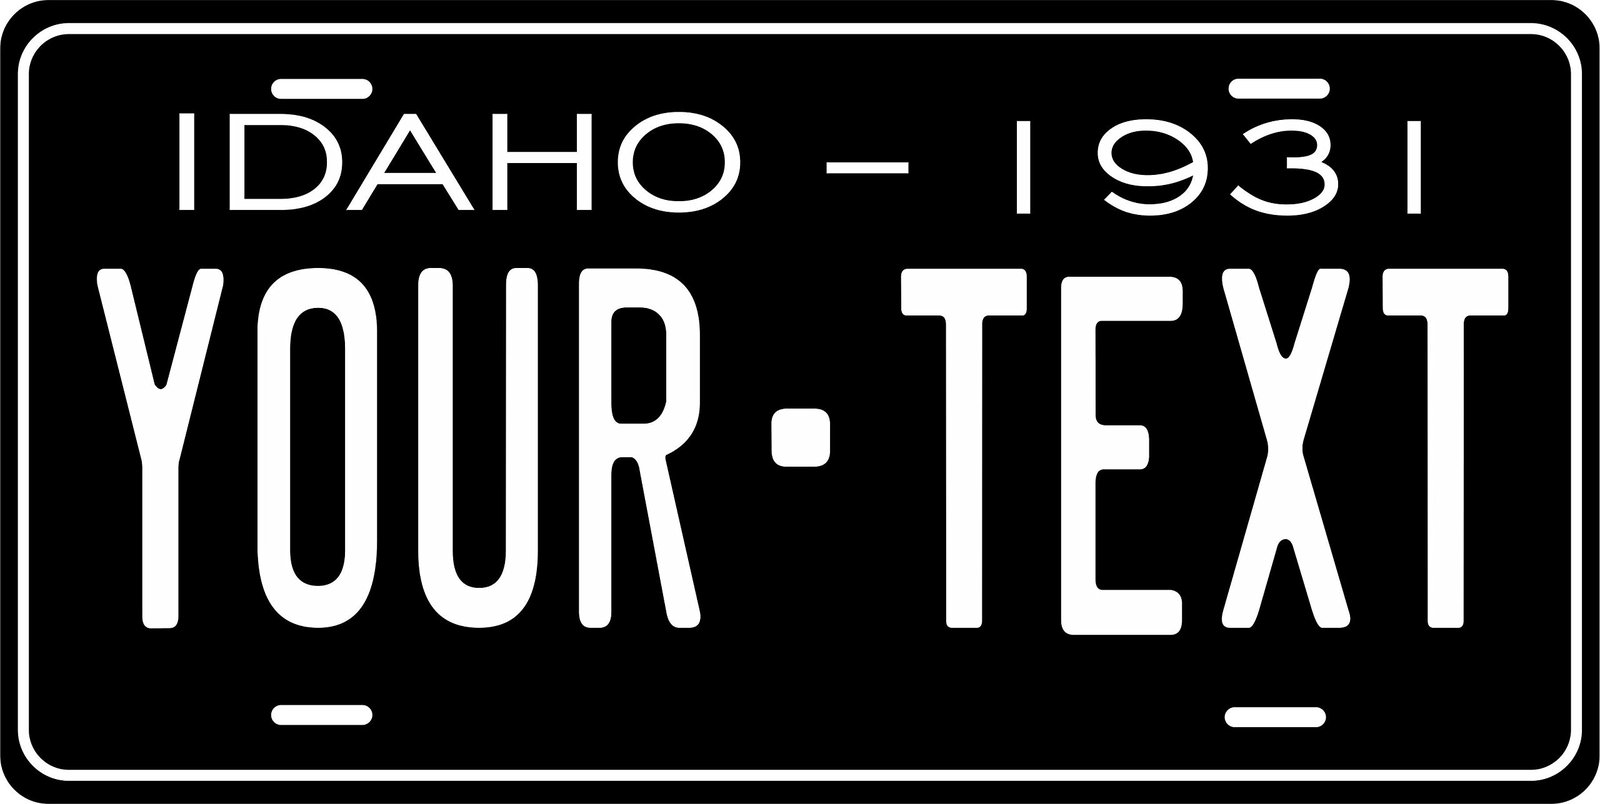 Idaho 1931 Personalized Tag Vehicle Car Auto License Plate